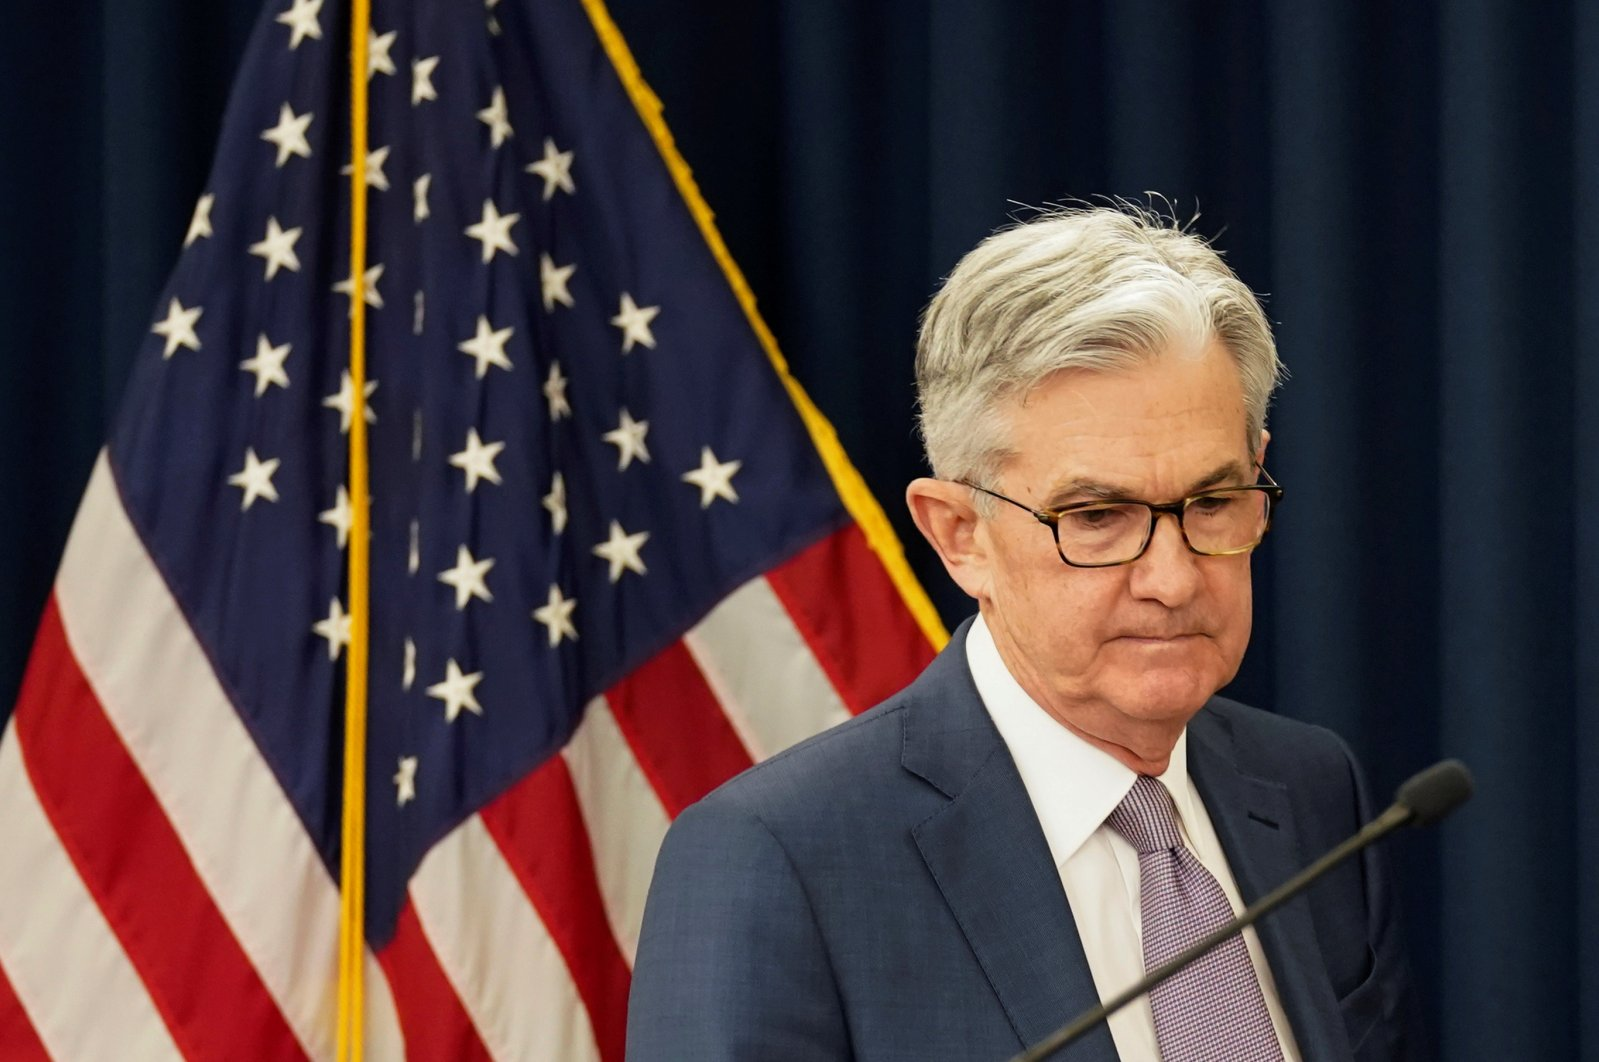 U.S. Federal Reserve Chairman Jerome Powellarrives to speak to reporters afterthe Federal Reserve cut interest rates in an emergency move designed to shield the world's largest economy from the impact of the coronavirus, in Washington, U.S., March 3, 2020. (Reuters Photo)